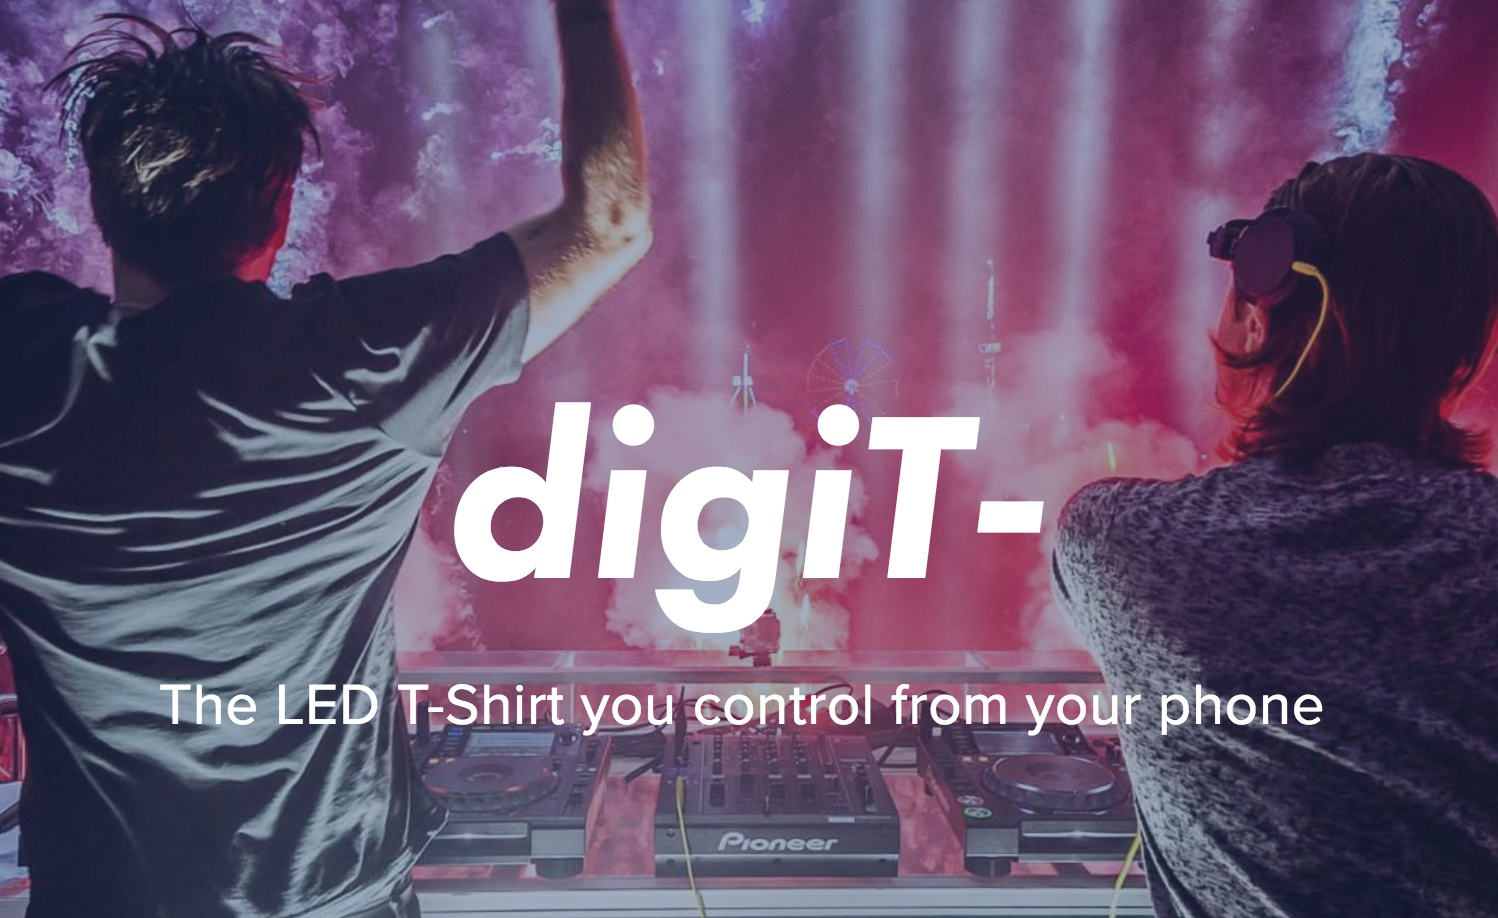 LED T-Shirt You Control From Your Phone Designed by Harvard Business School MBA Students